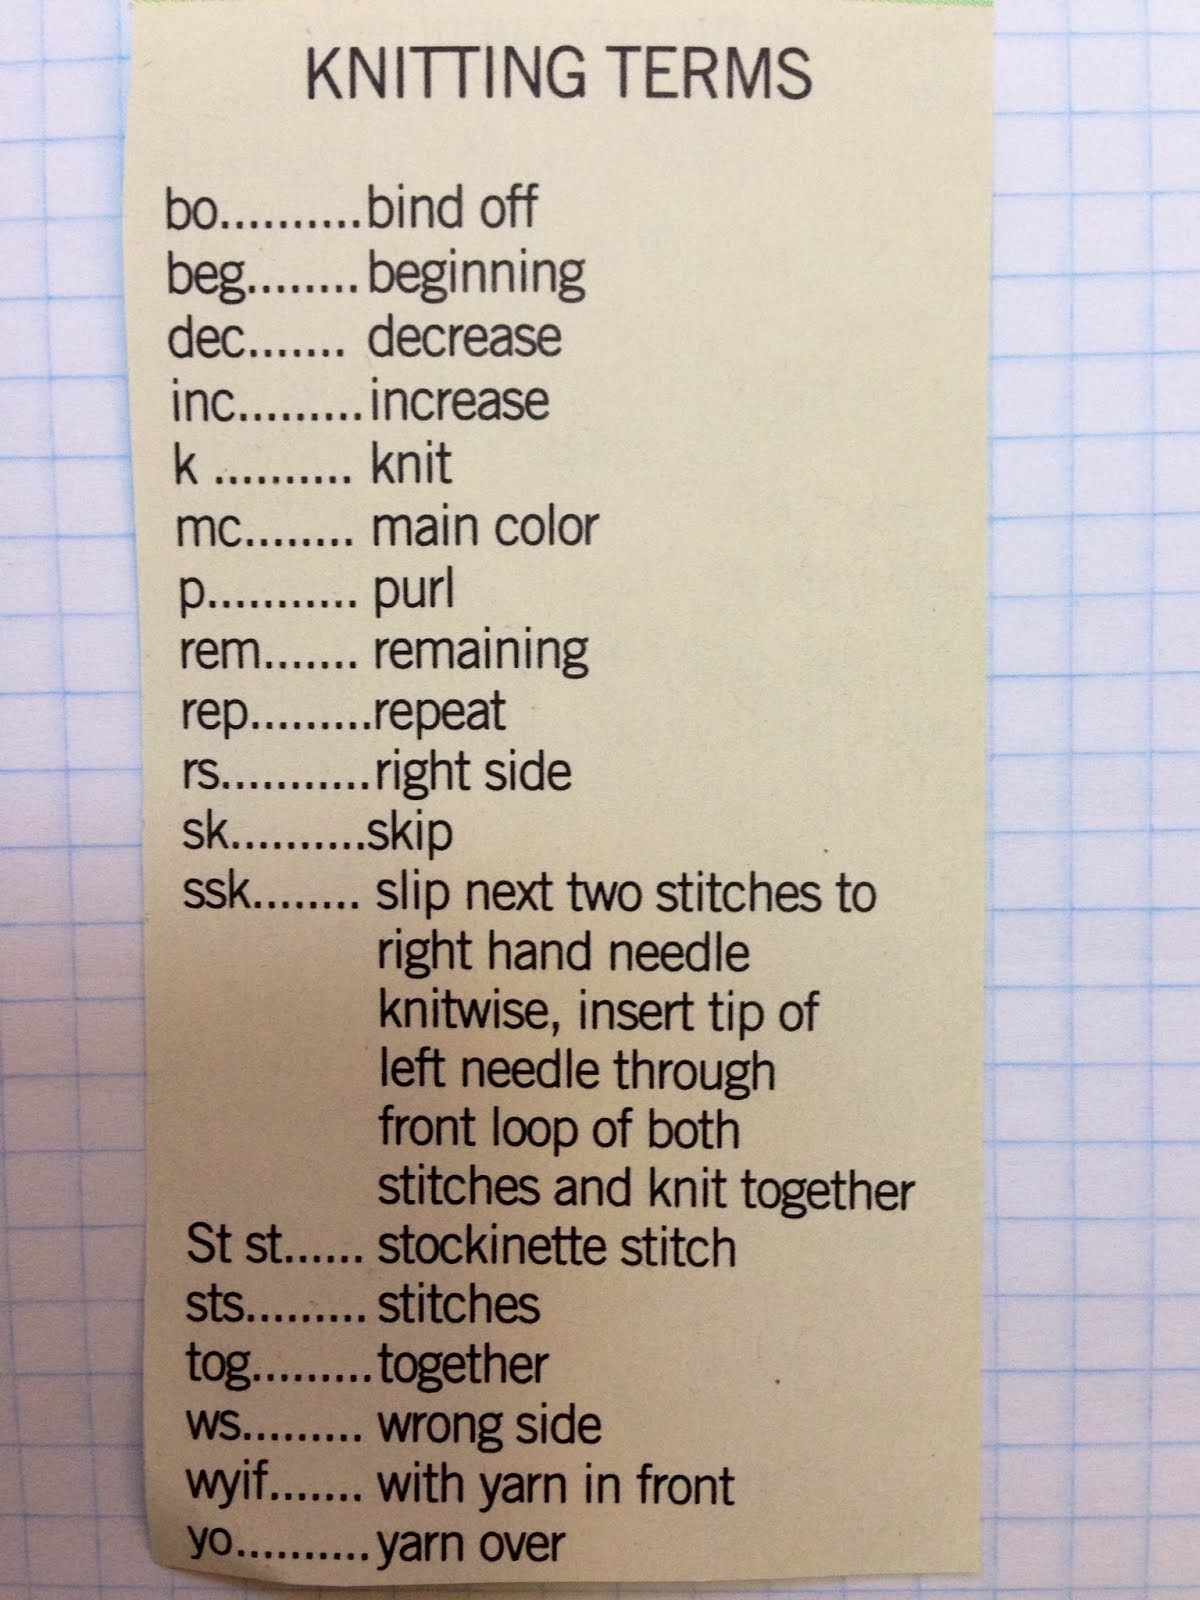 Knitting terms